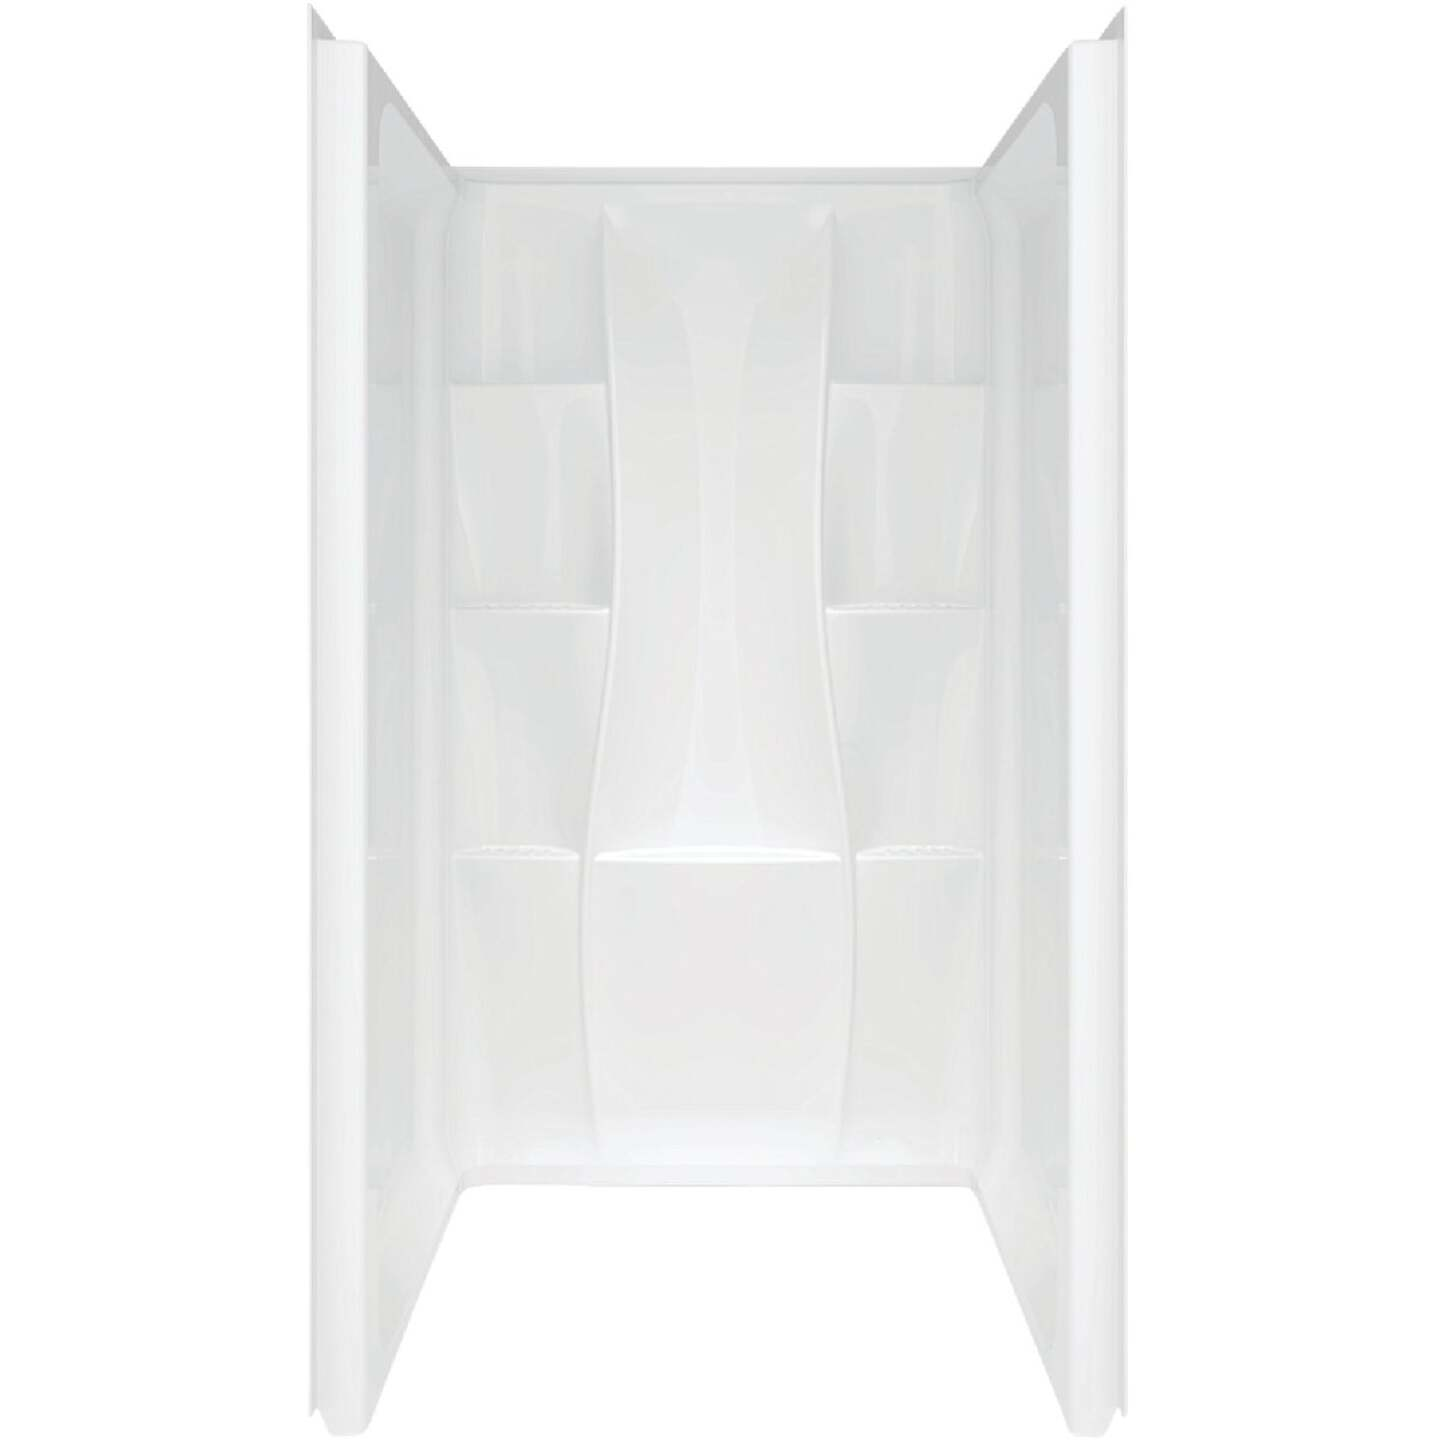 Delta Classic 400 3-Piece 36 In. L x 36 In. D Shower Wall Set in White Image 1